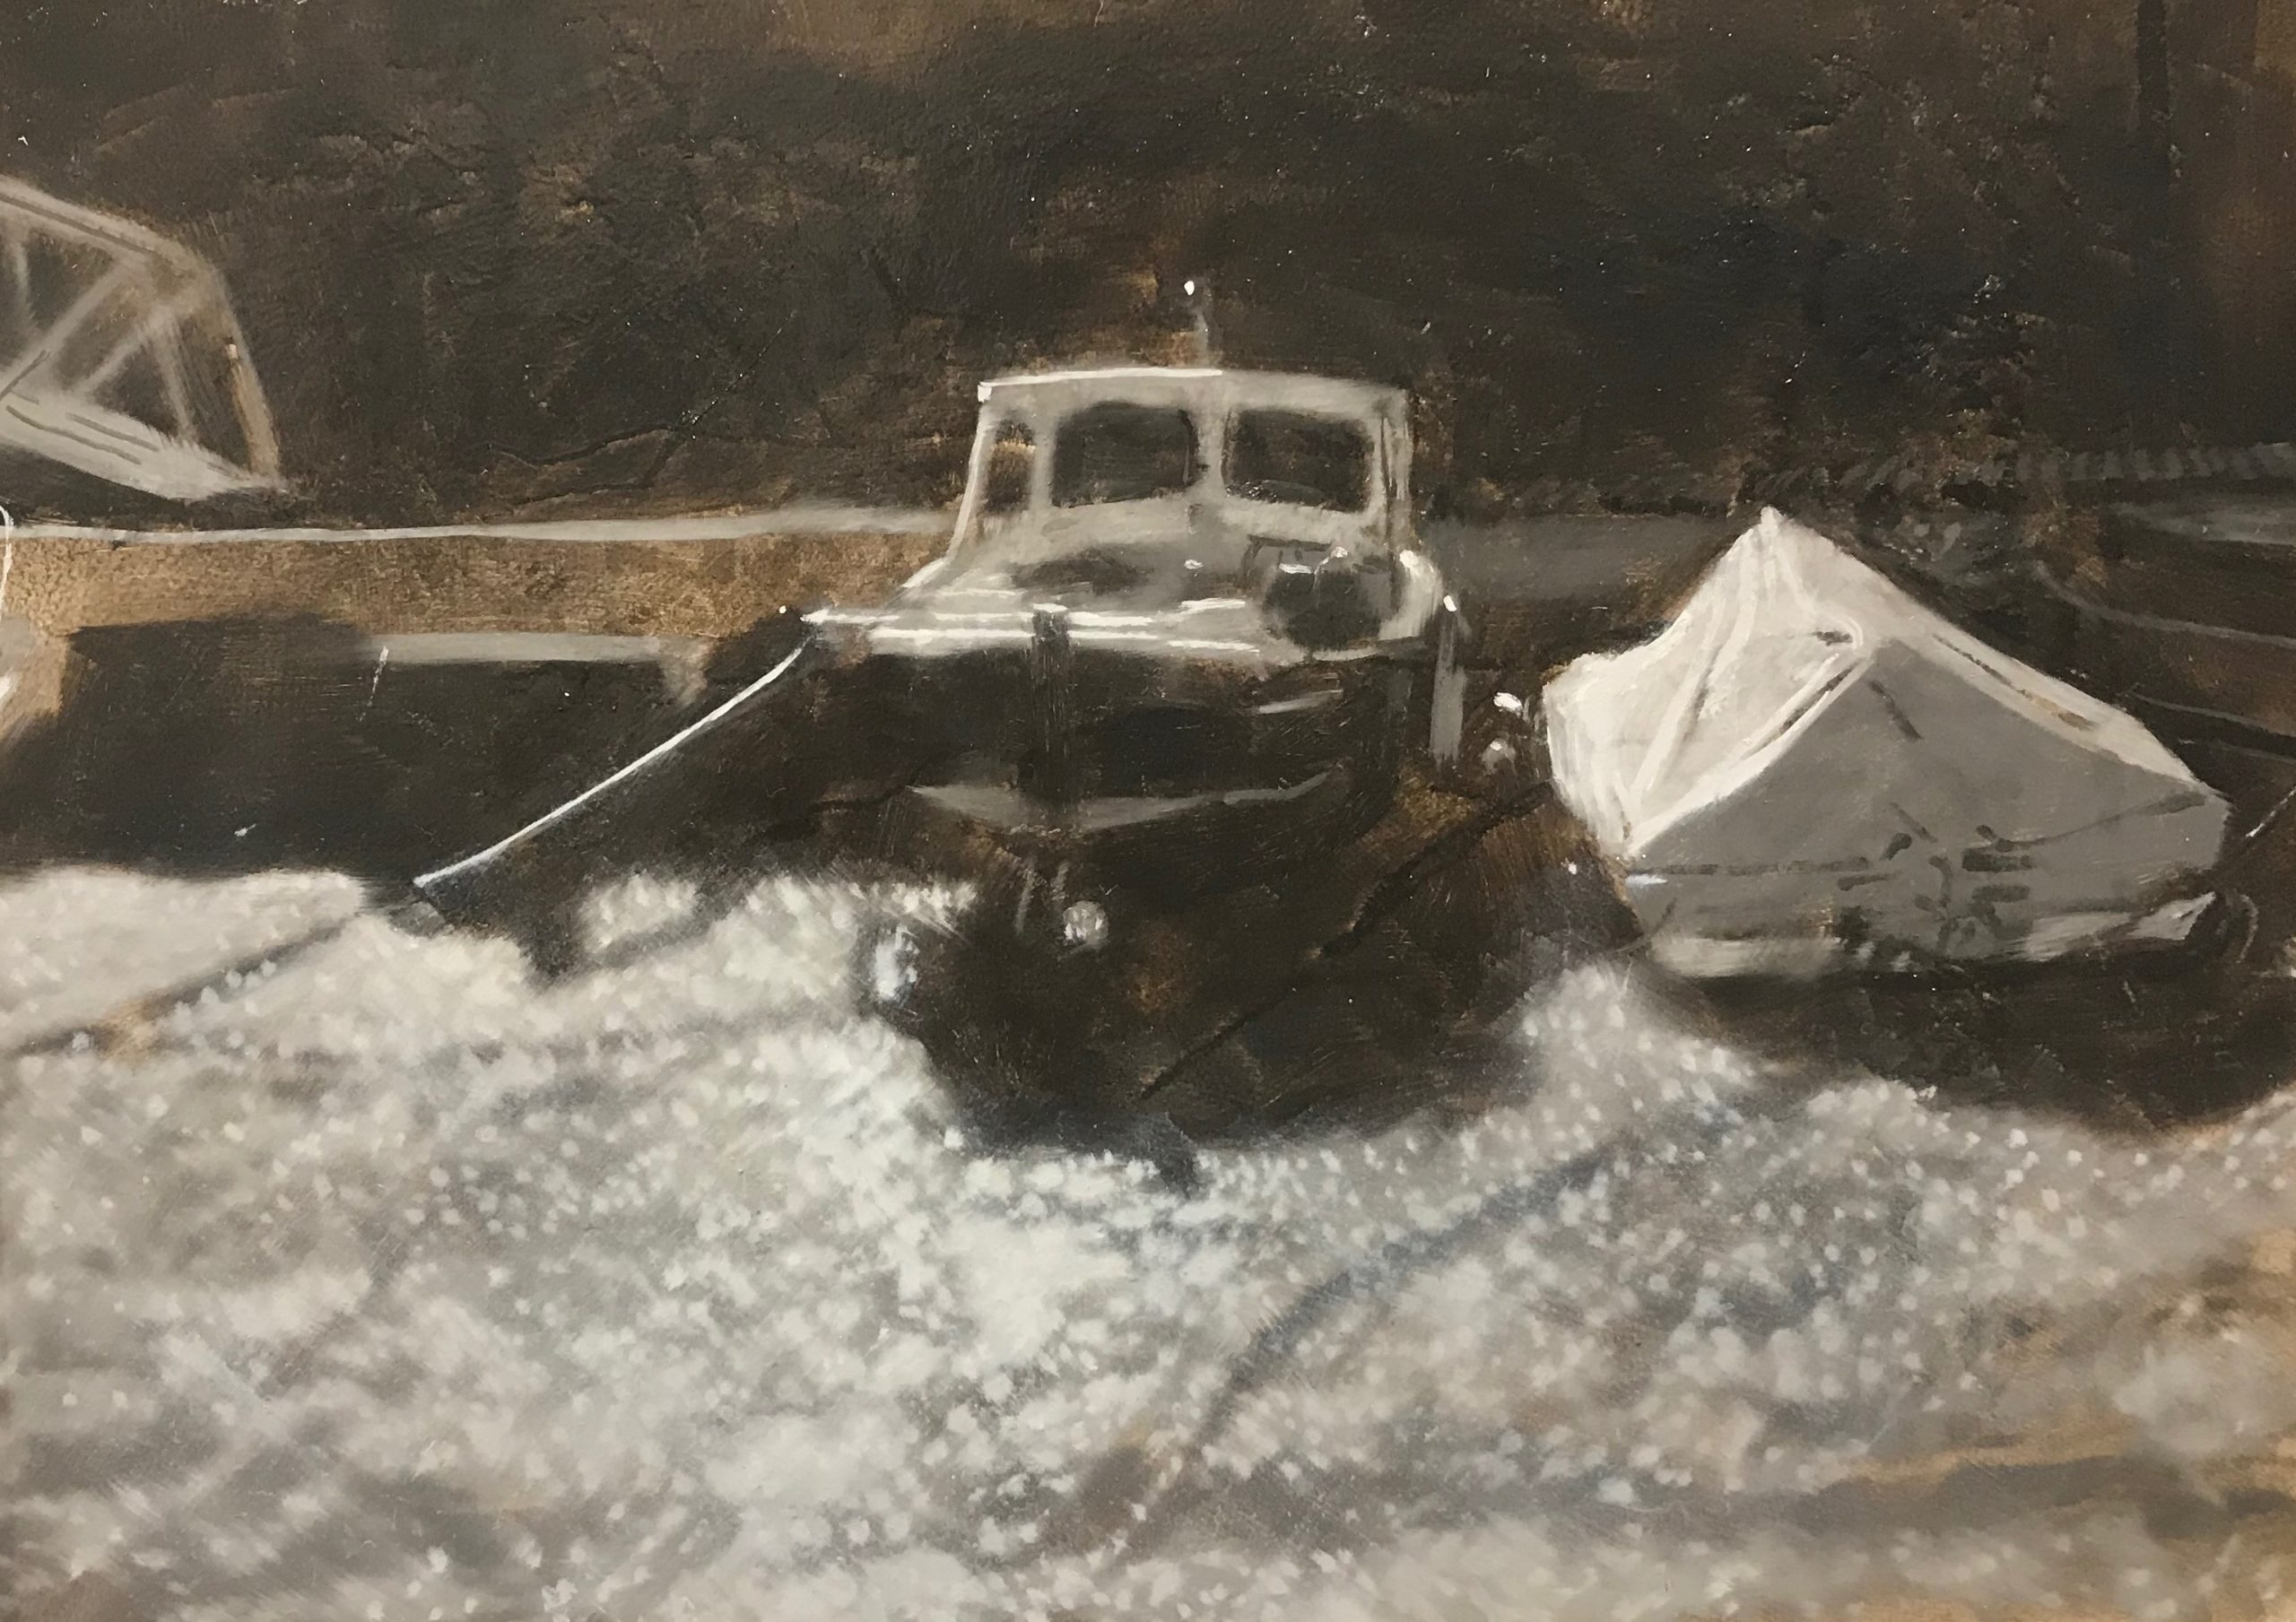 <br><em>Waiting for the tide</em>, 2019<br>Greg Ramsden<br>Oil on Panel, 30 x 25 cm